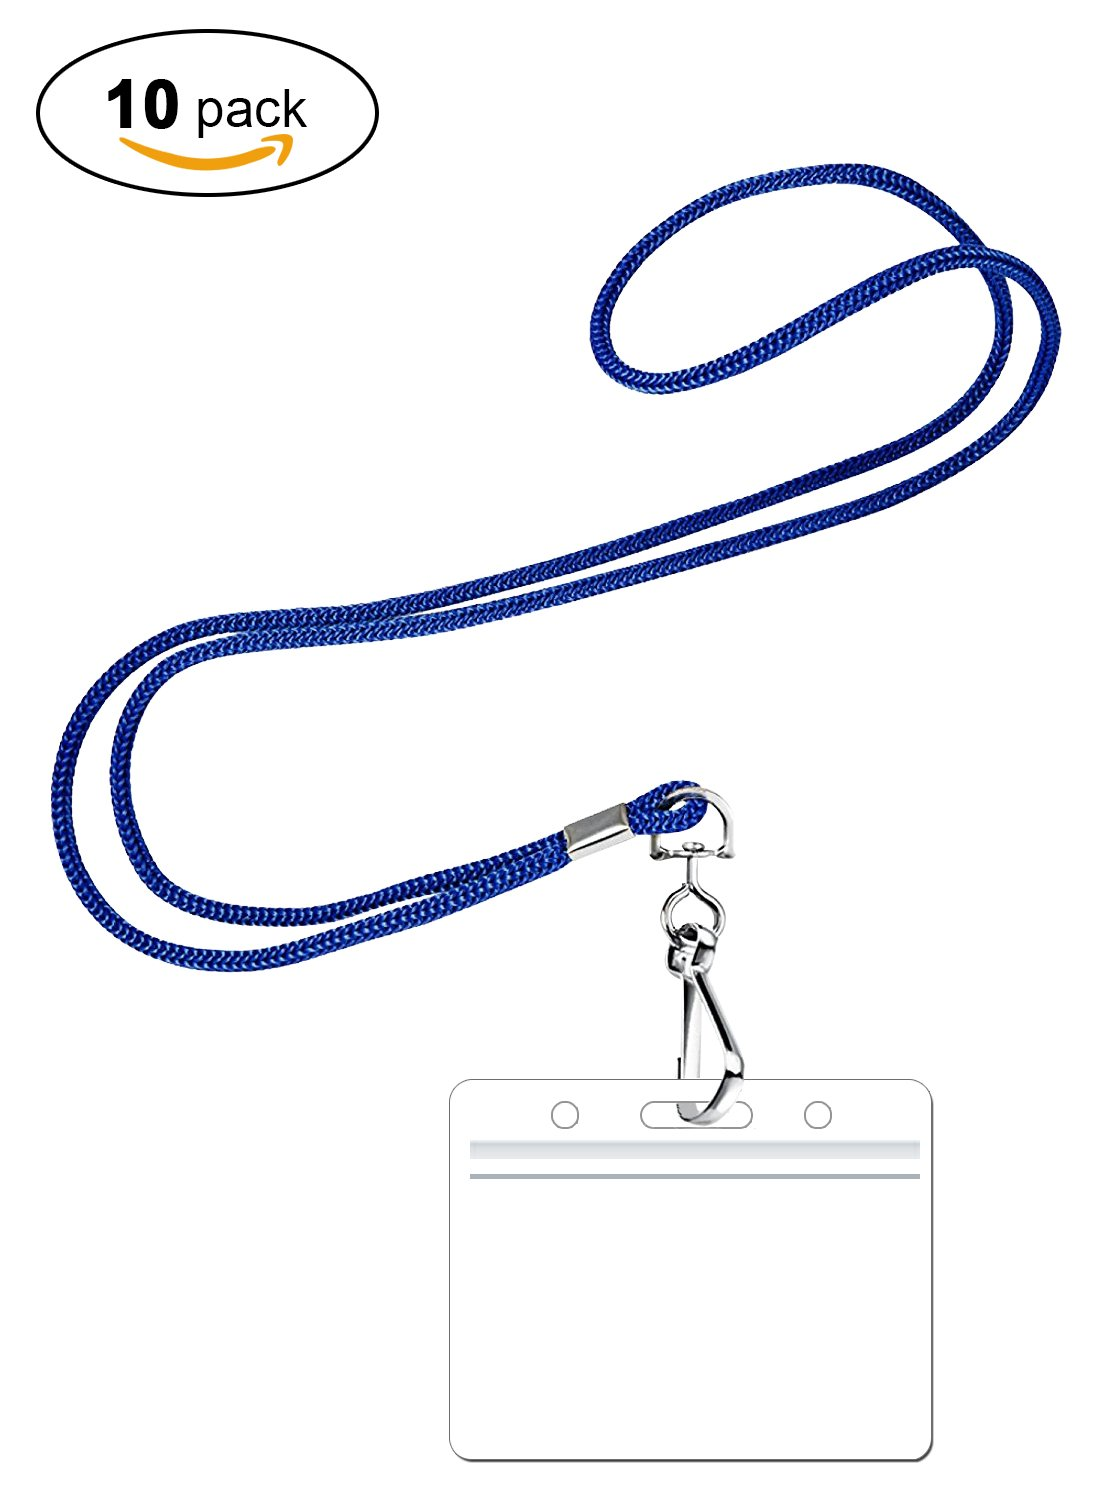 PROMOKING Woven Lanyard with Horizontal ID Badge Holder and Swivel Hook Available In 3 Colors | Red, Royal Blue, Black (10pk, Royal Blue)